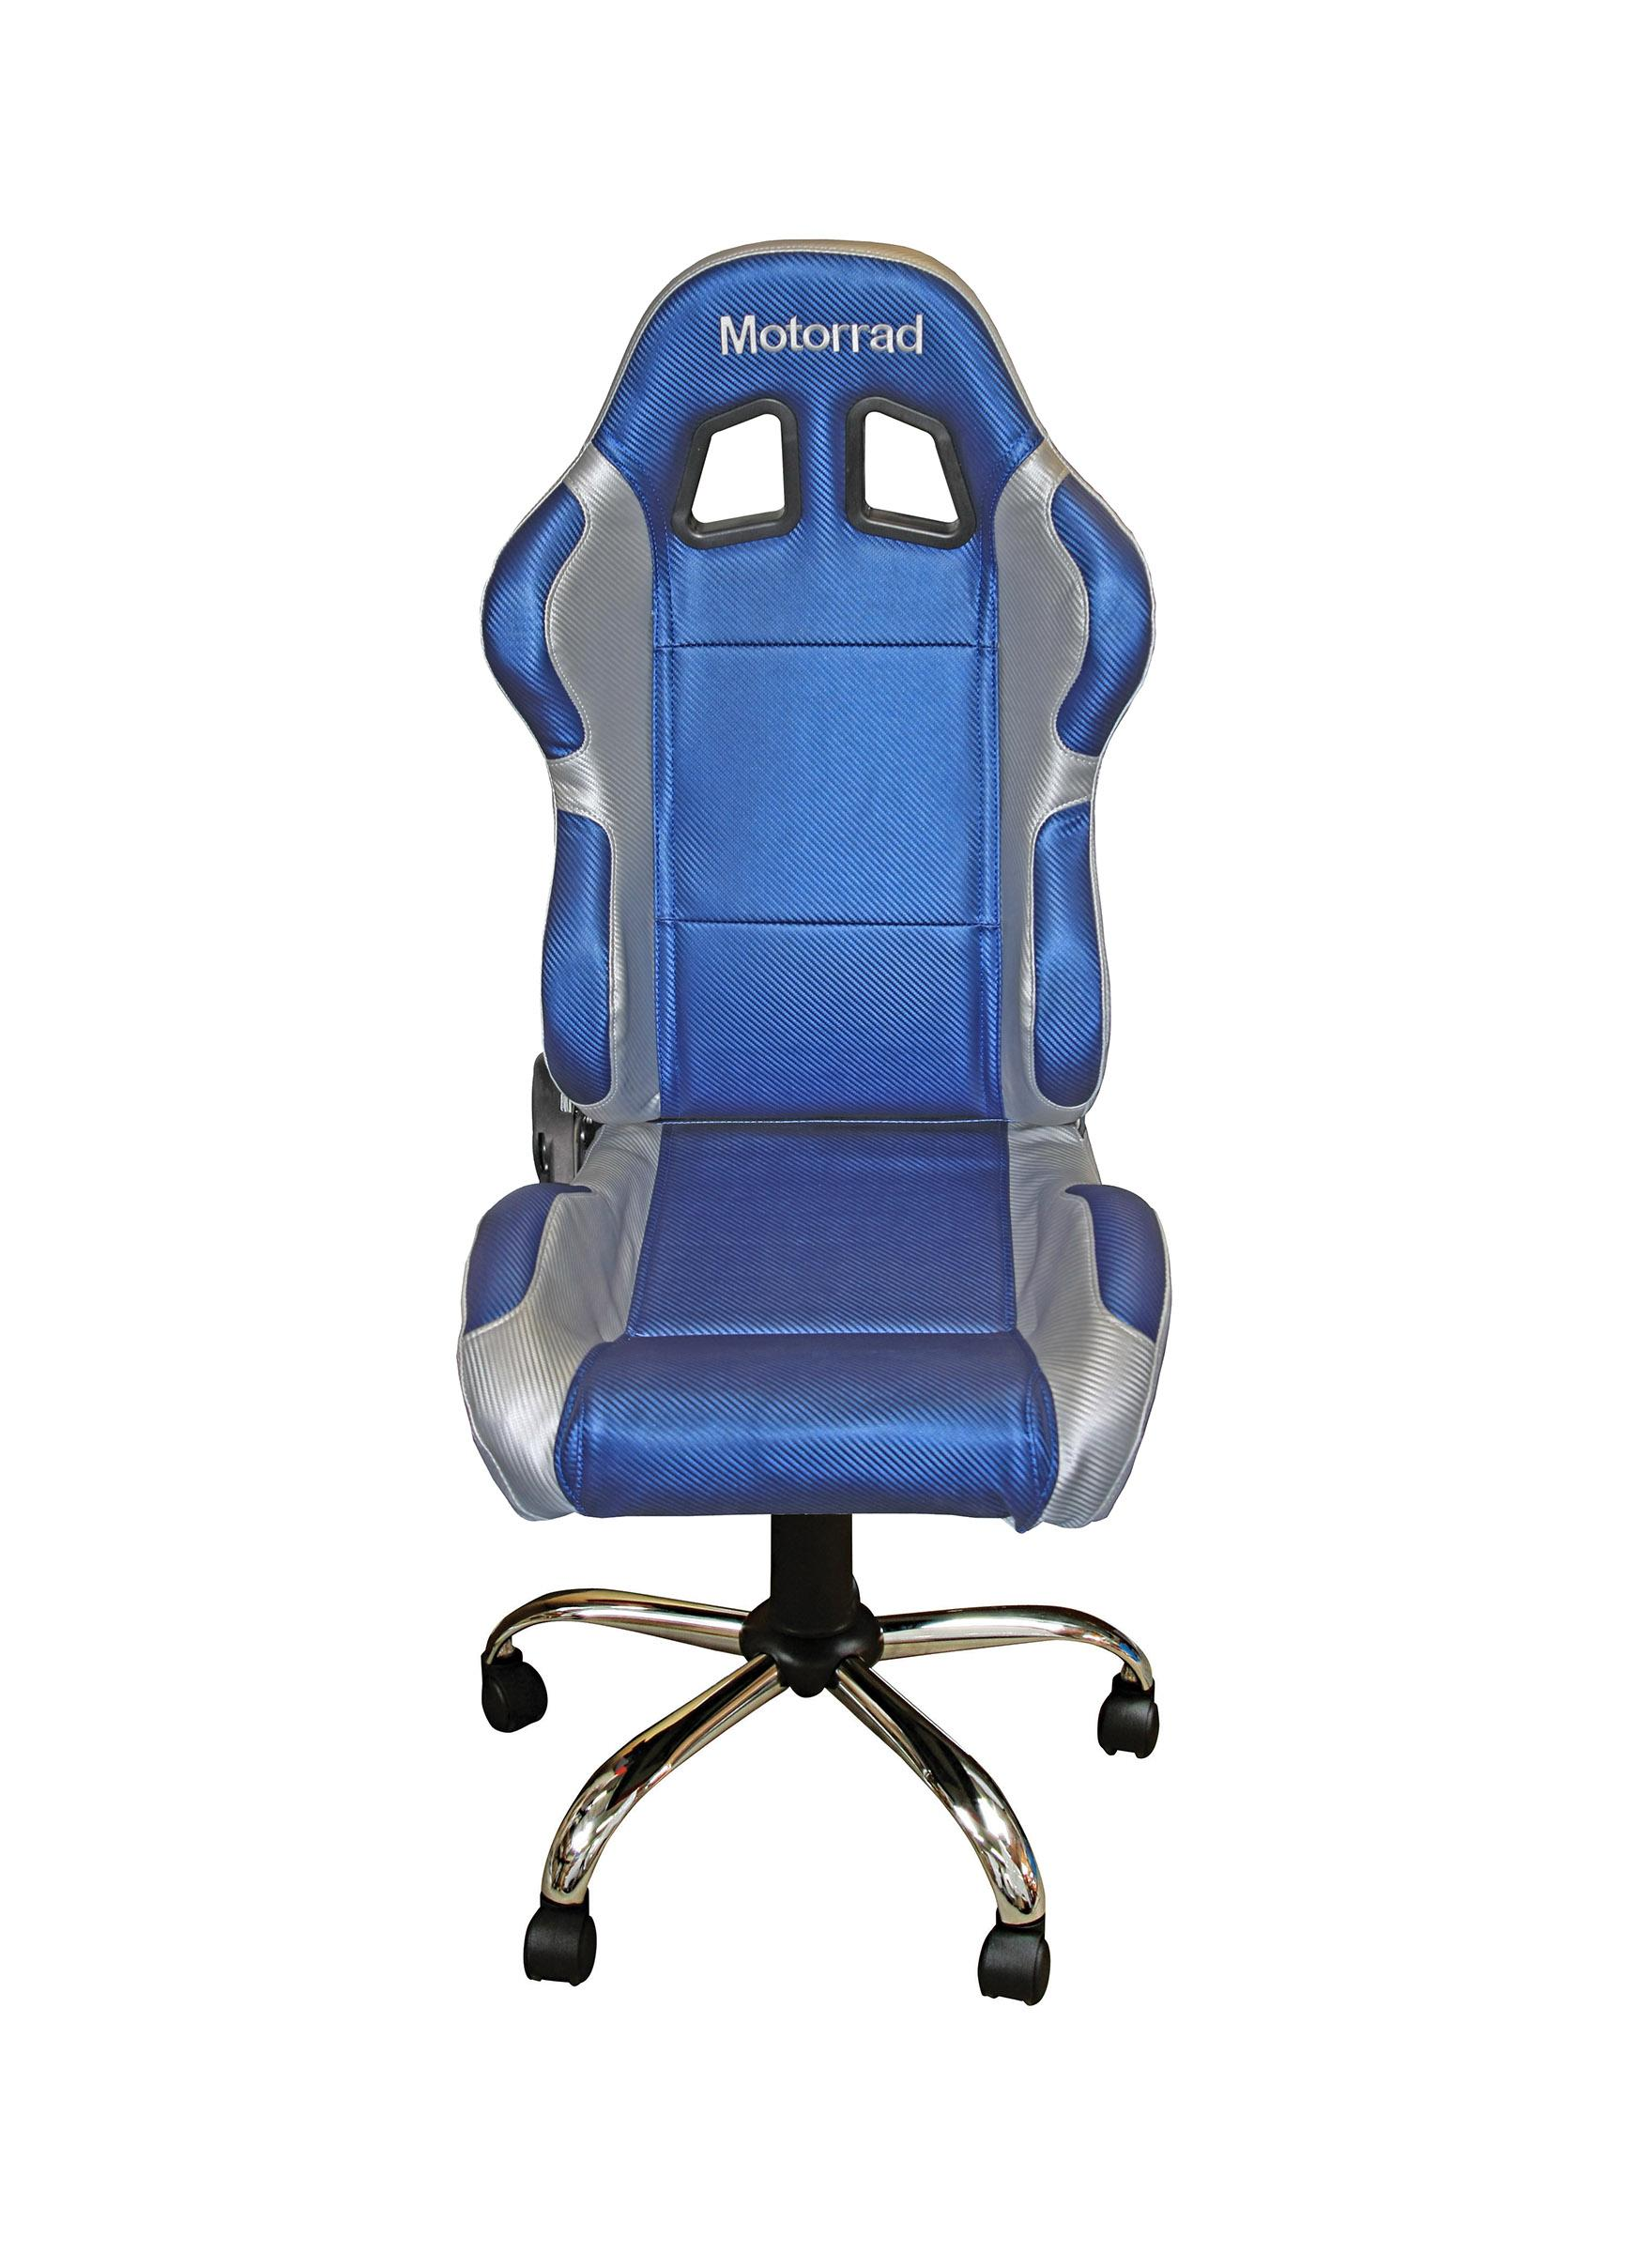 RIDER PADDOCK TEAM CHAIR - MOTORRAD BLUE WITH SILVER TRIM